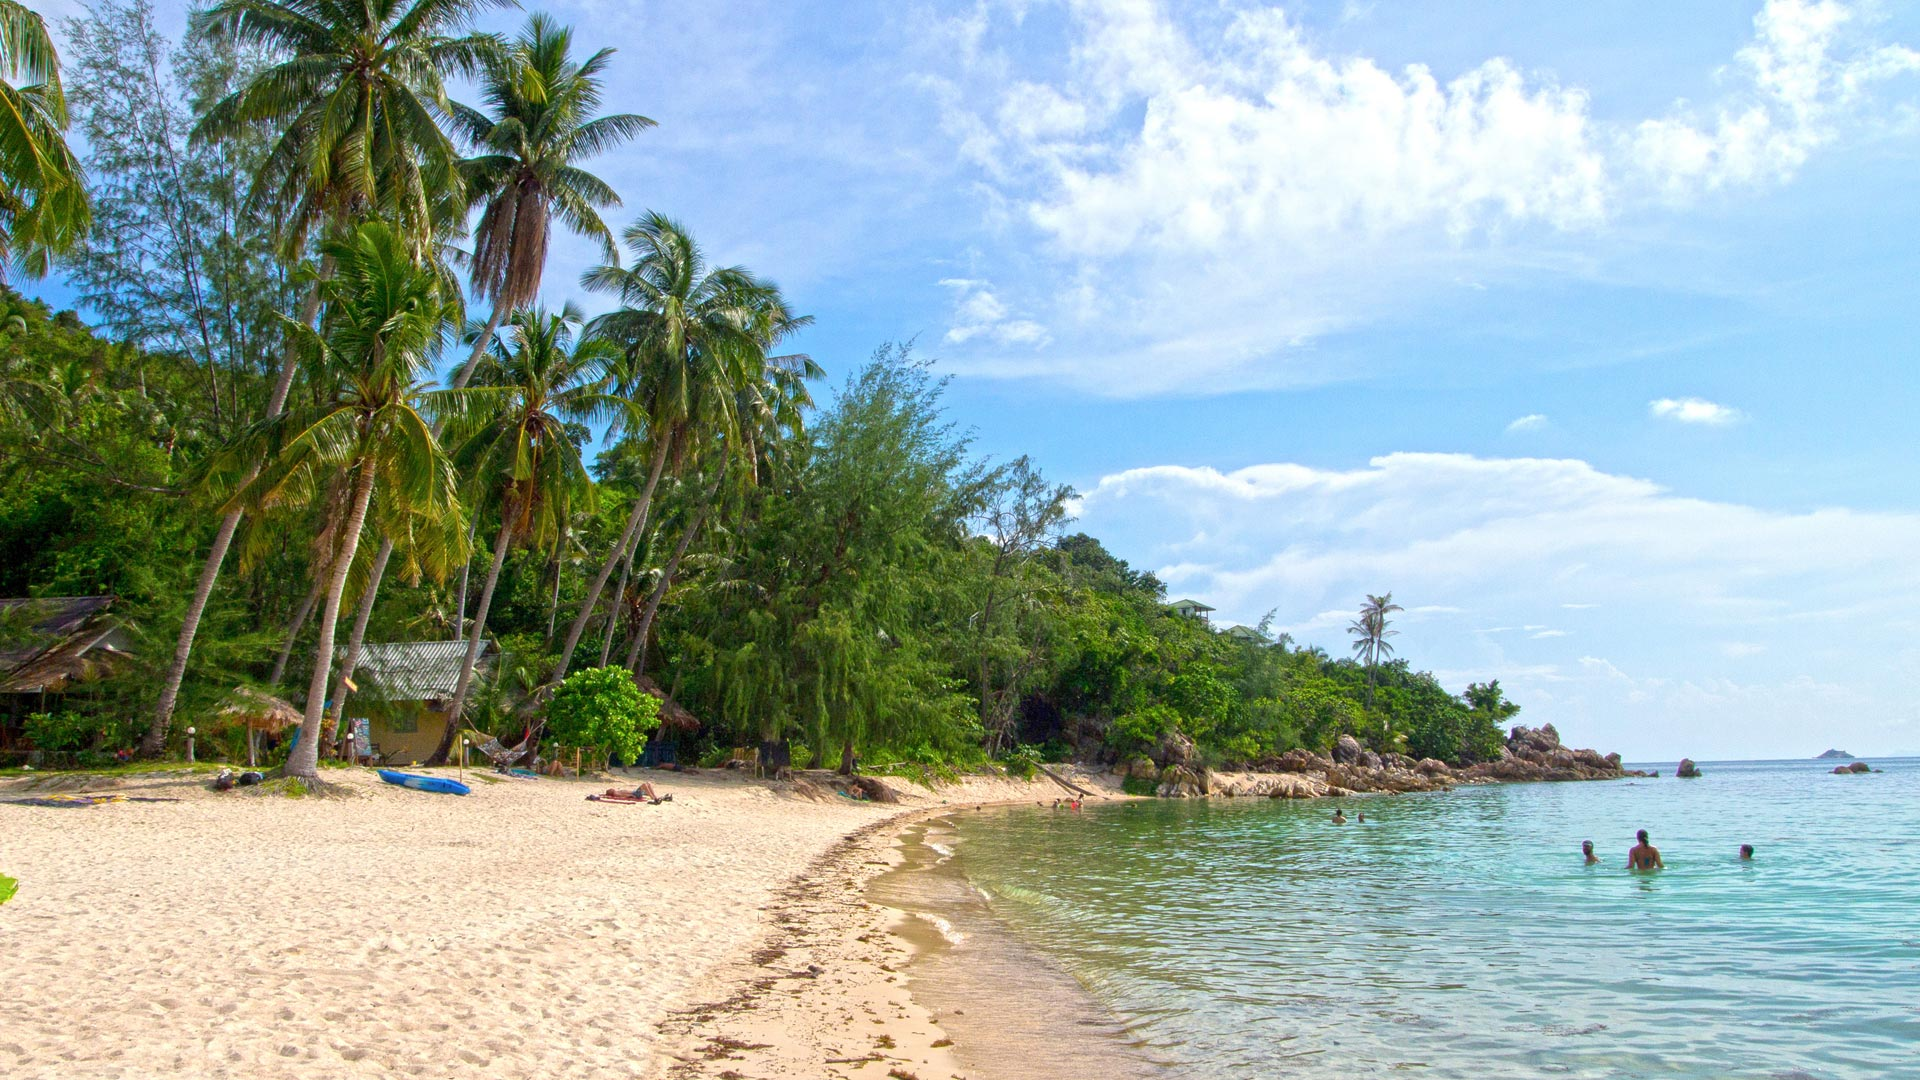 Koh Phangan beach guide 10 beaches you need to visit Travel blog